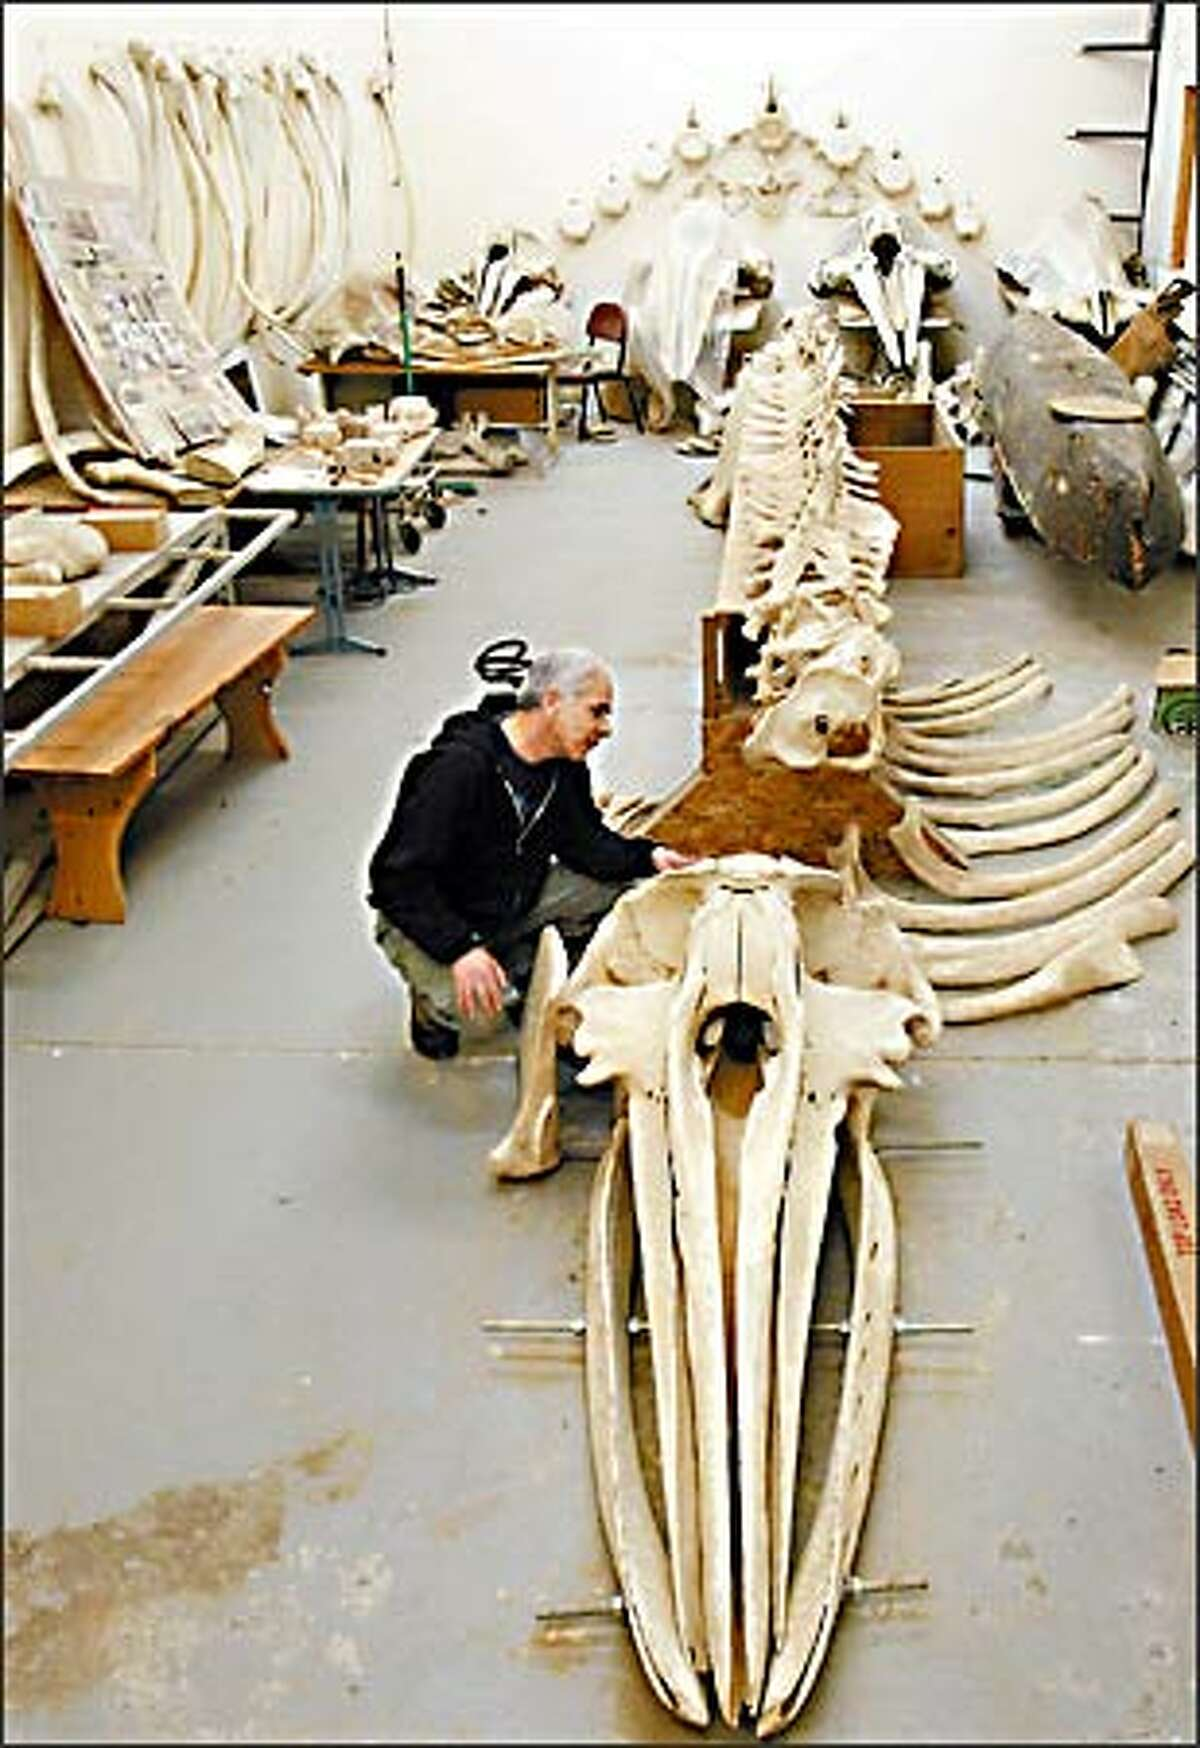 In the Makah high school wood shop building, Wayne Johnson examines the skull of a gray whale taken in 1999 by tribe members, with him as their captain. The skeleton is expected to be moved soon to the tribe museum.